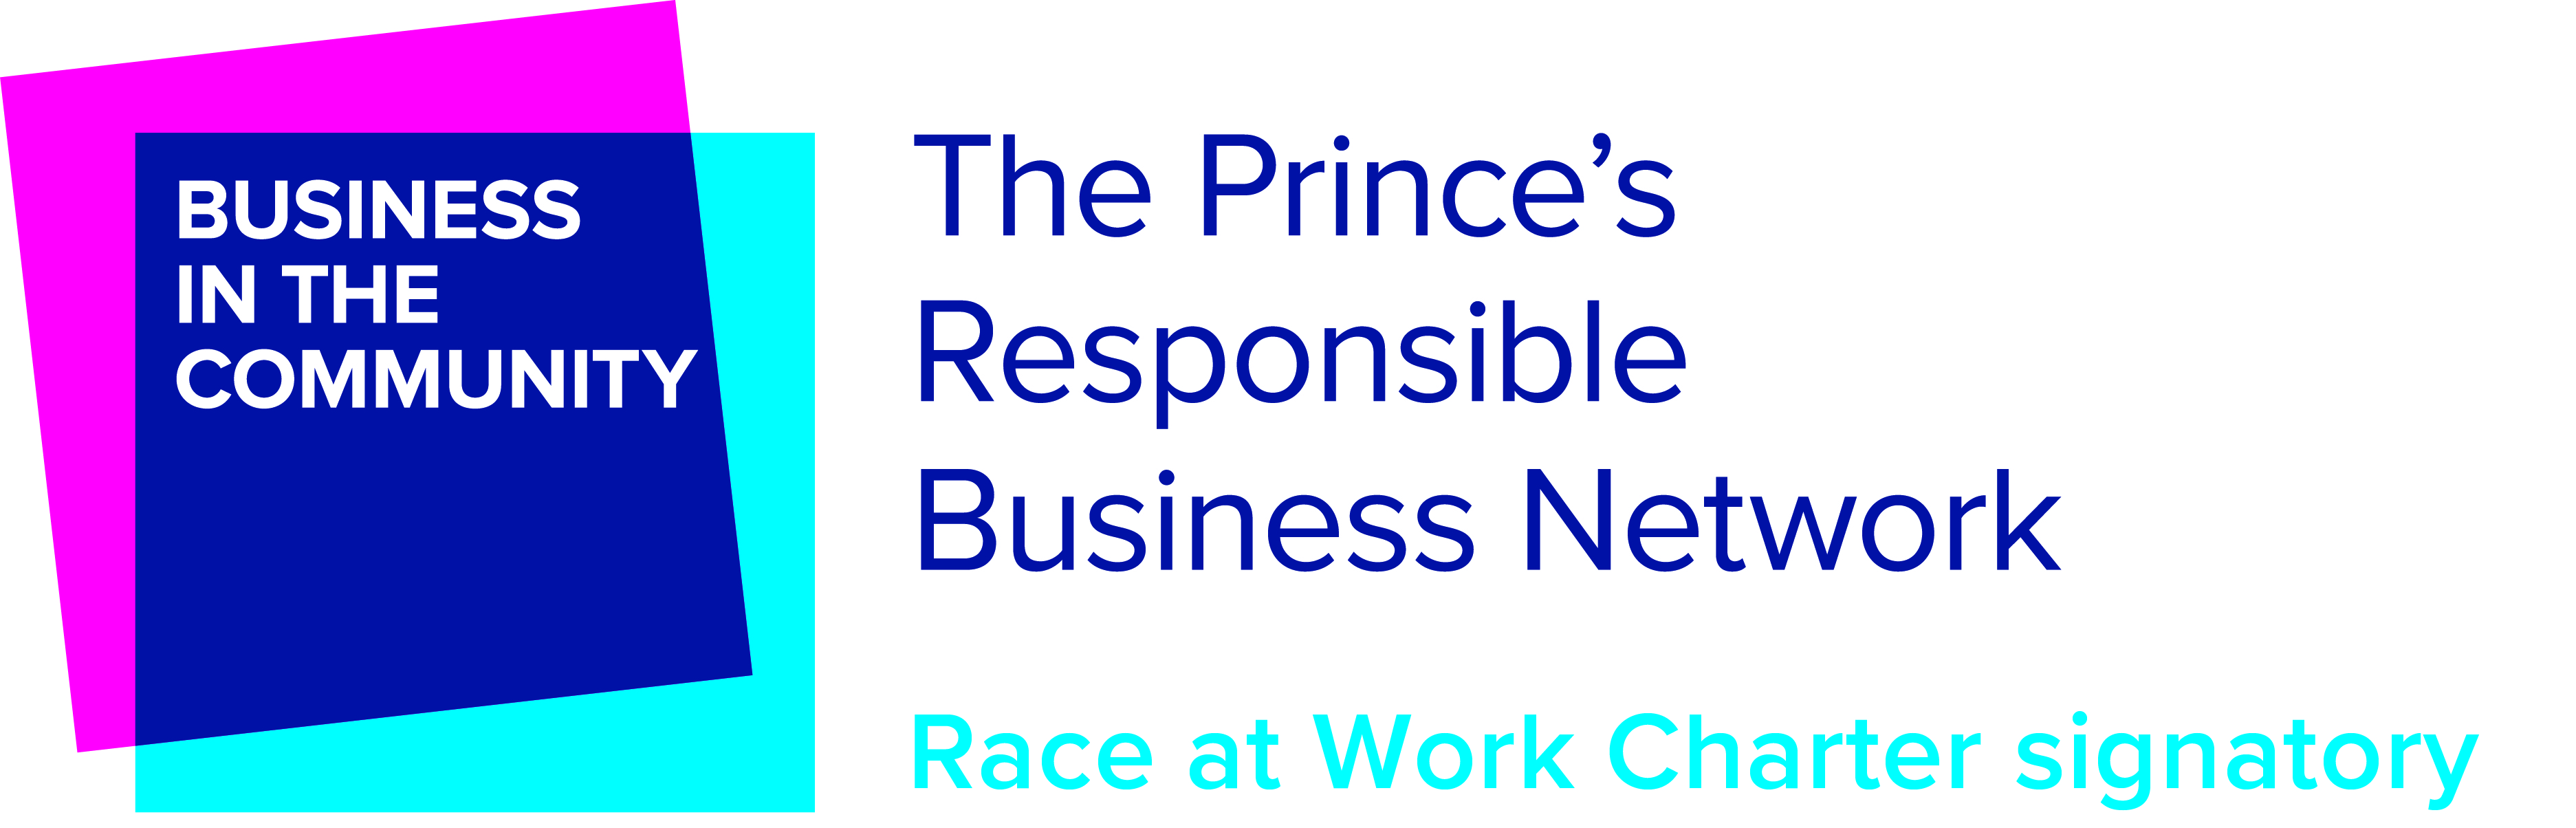 AAT has signed The Prince's Responsible Business Network: Race at Work Charter